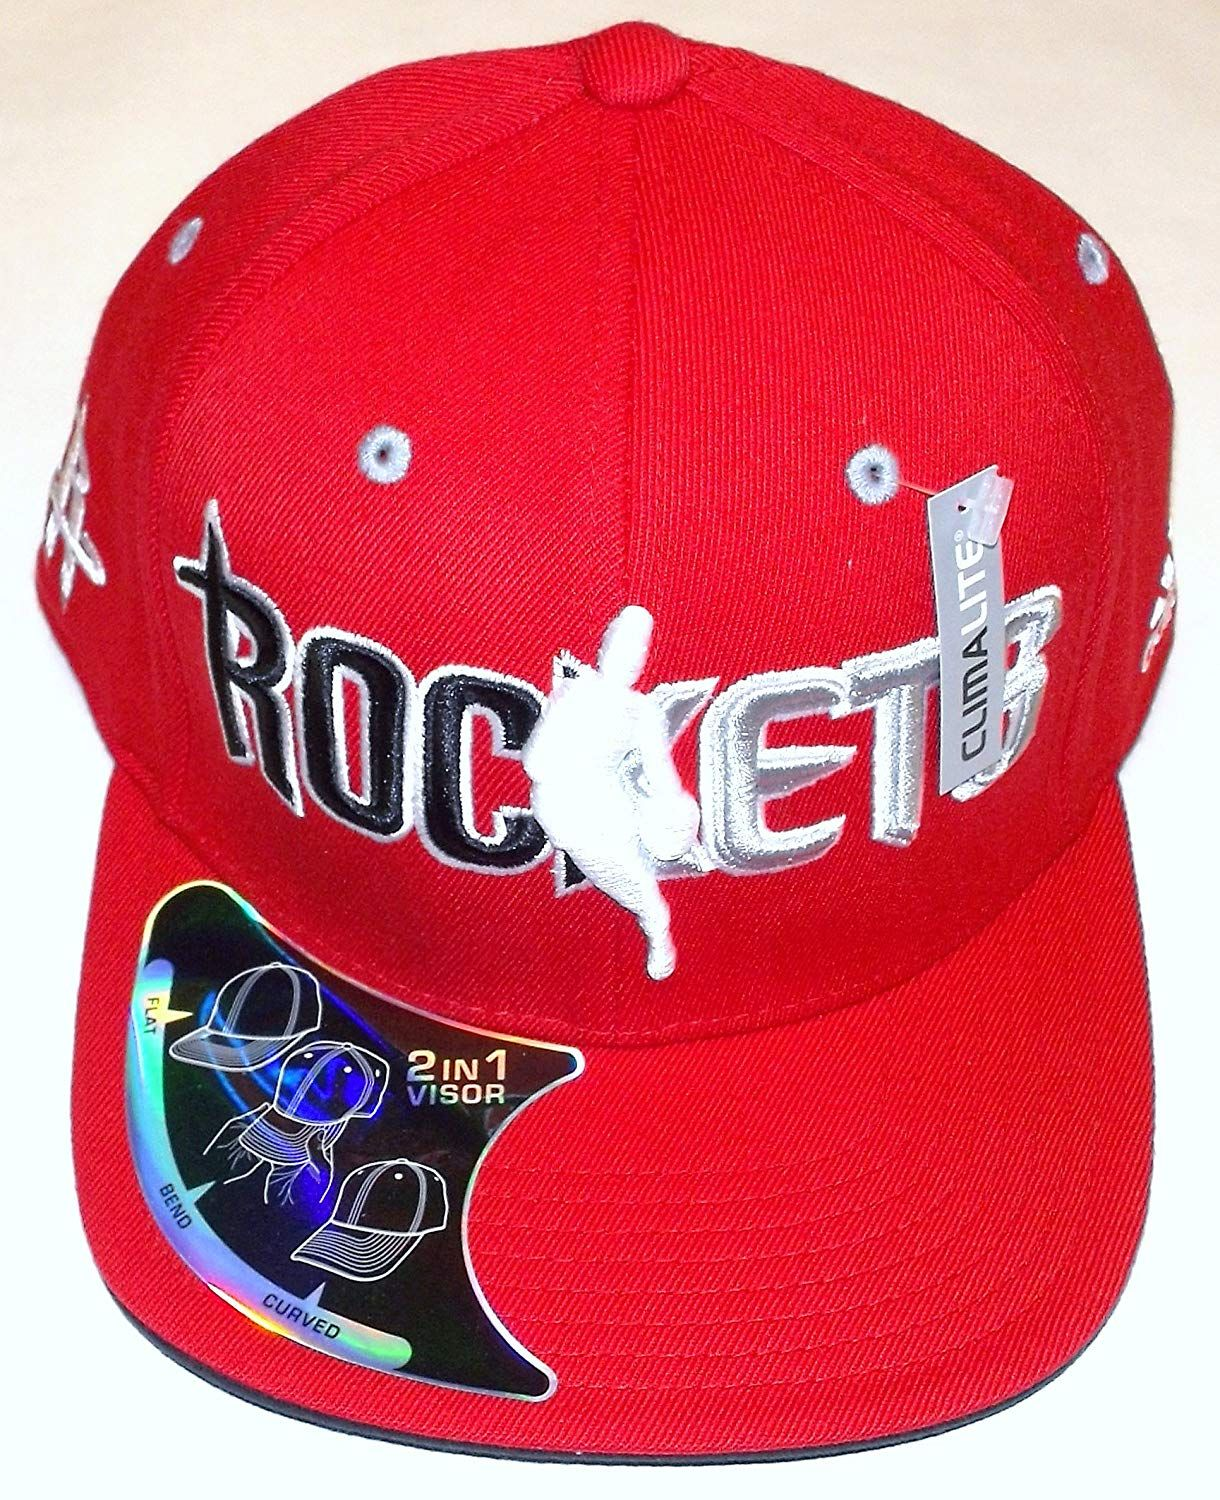 new products 07407 9a4ba NBA Houston Rockets 2 in 1 Visor Flex Adidas Hat - L XL,  12.99